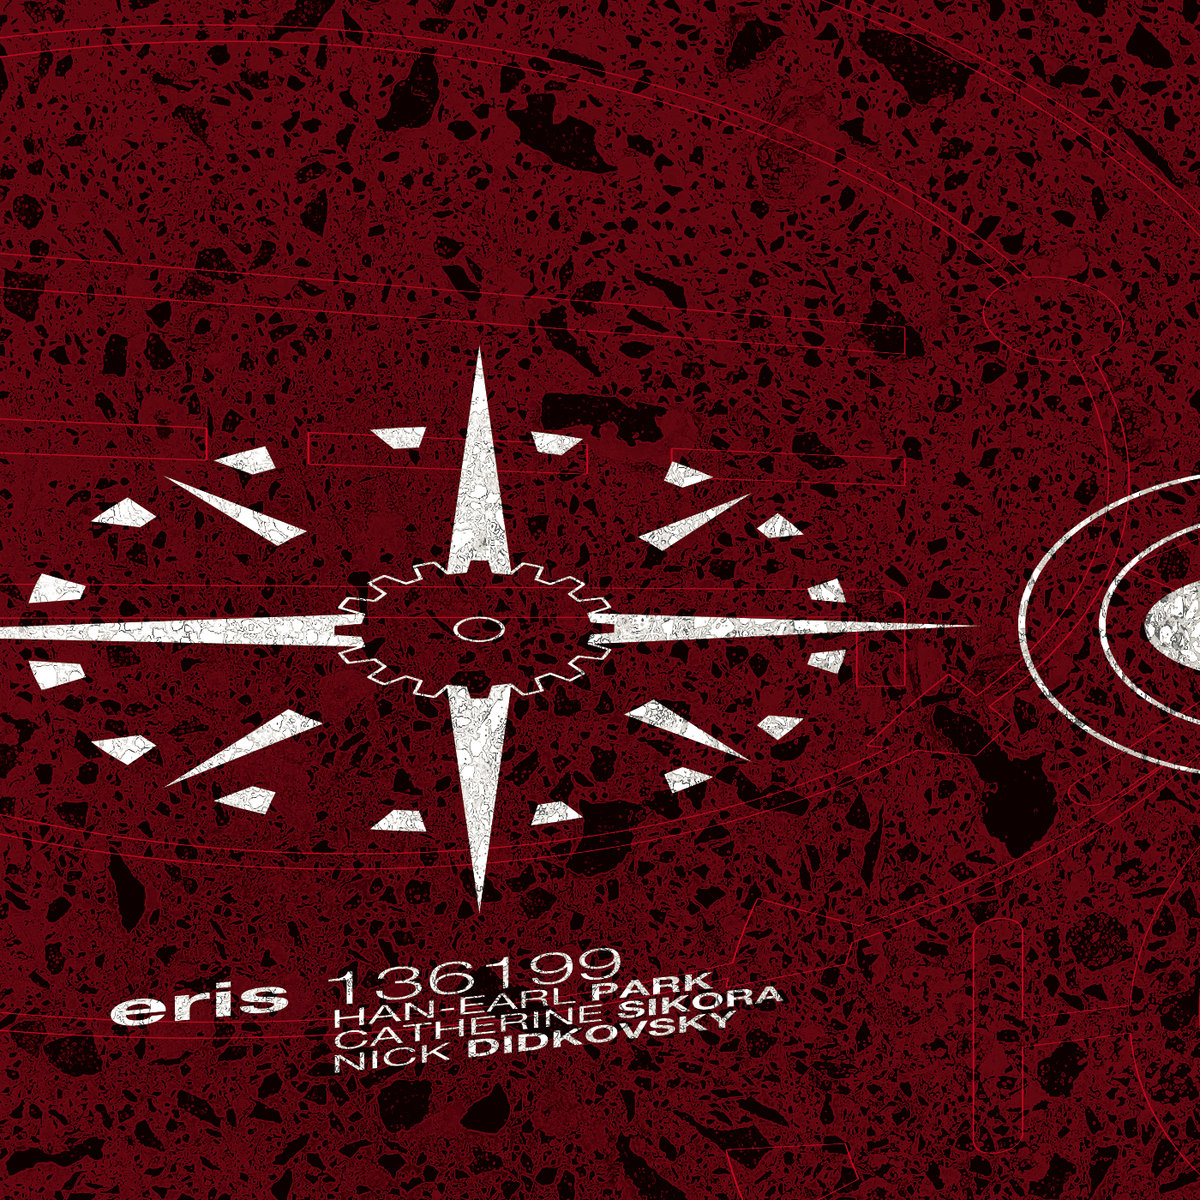 Review: Eris 136199 by Han earl-Park, Catherine Sikora, and Nick Didkovsky